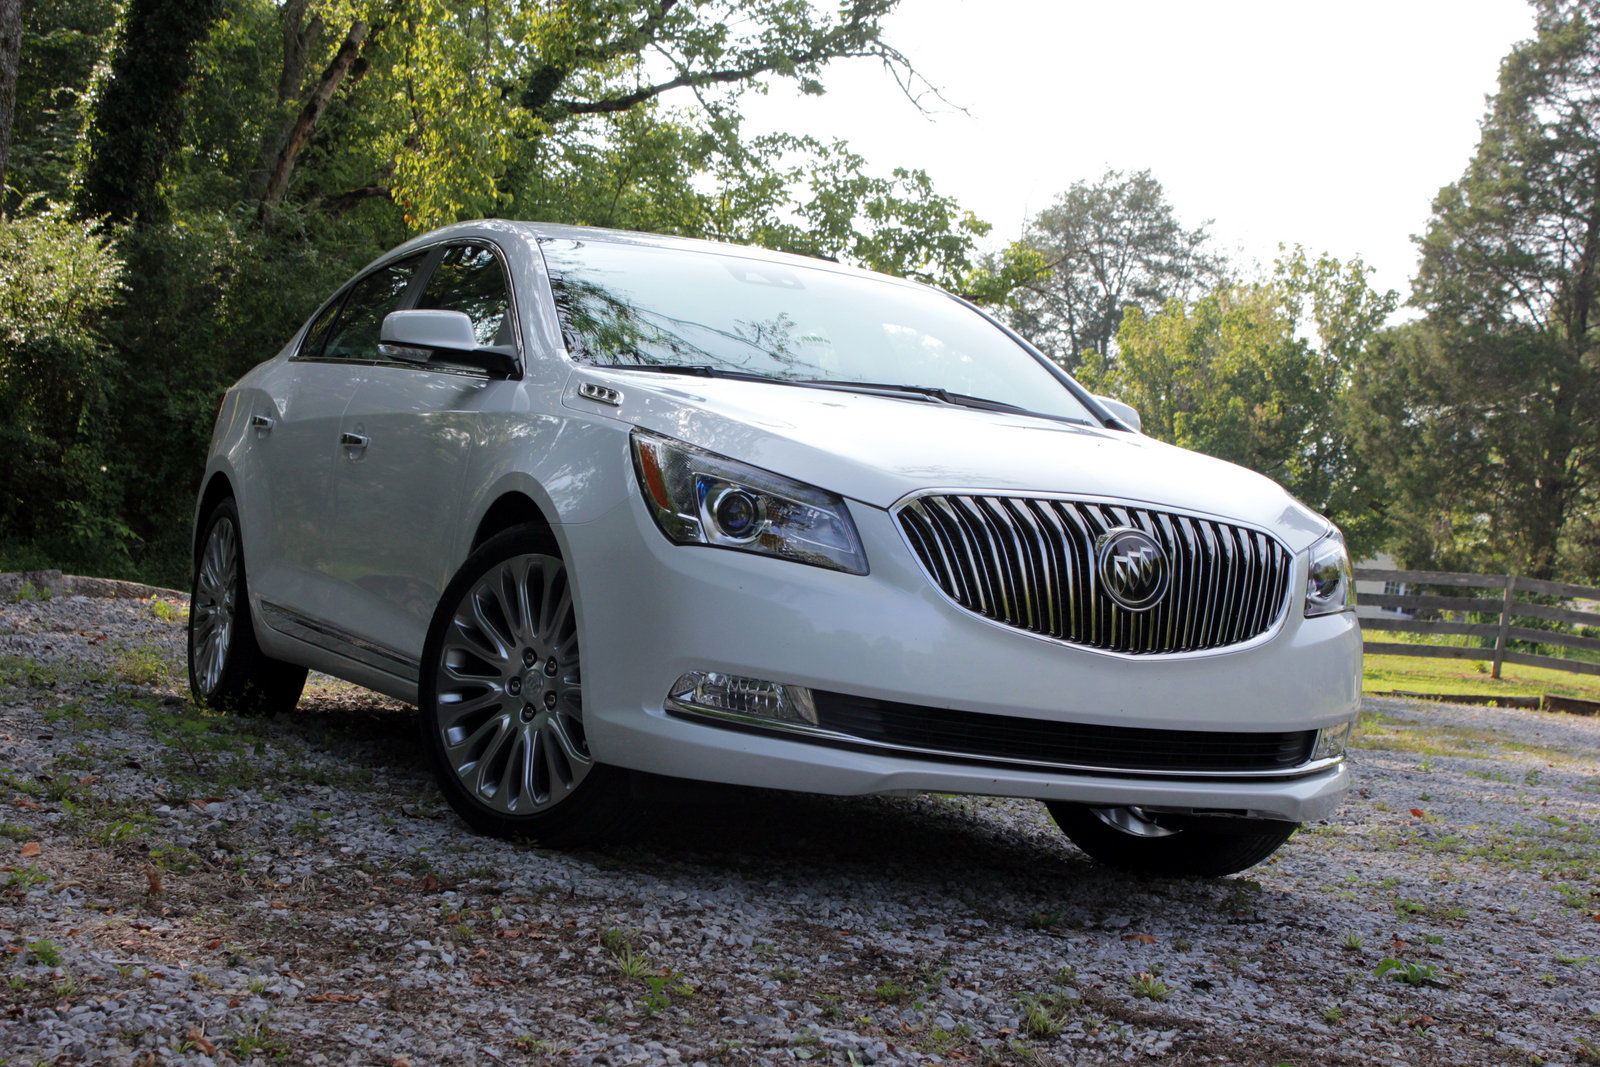 2015 buick lacrosse driven picture 564820 car review top speed. Black Bedroom Furniture Sets. Home Design Ideas